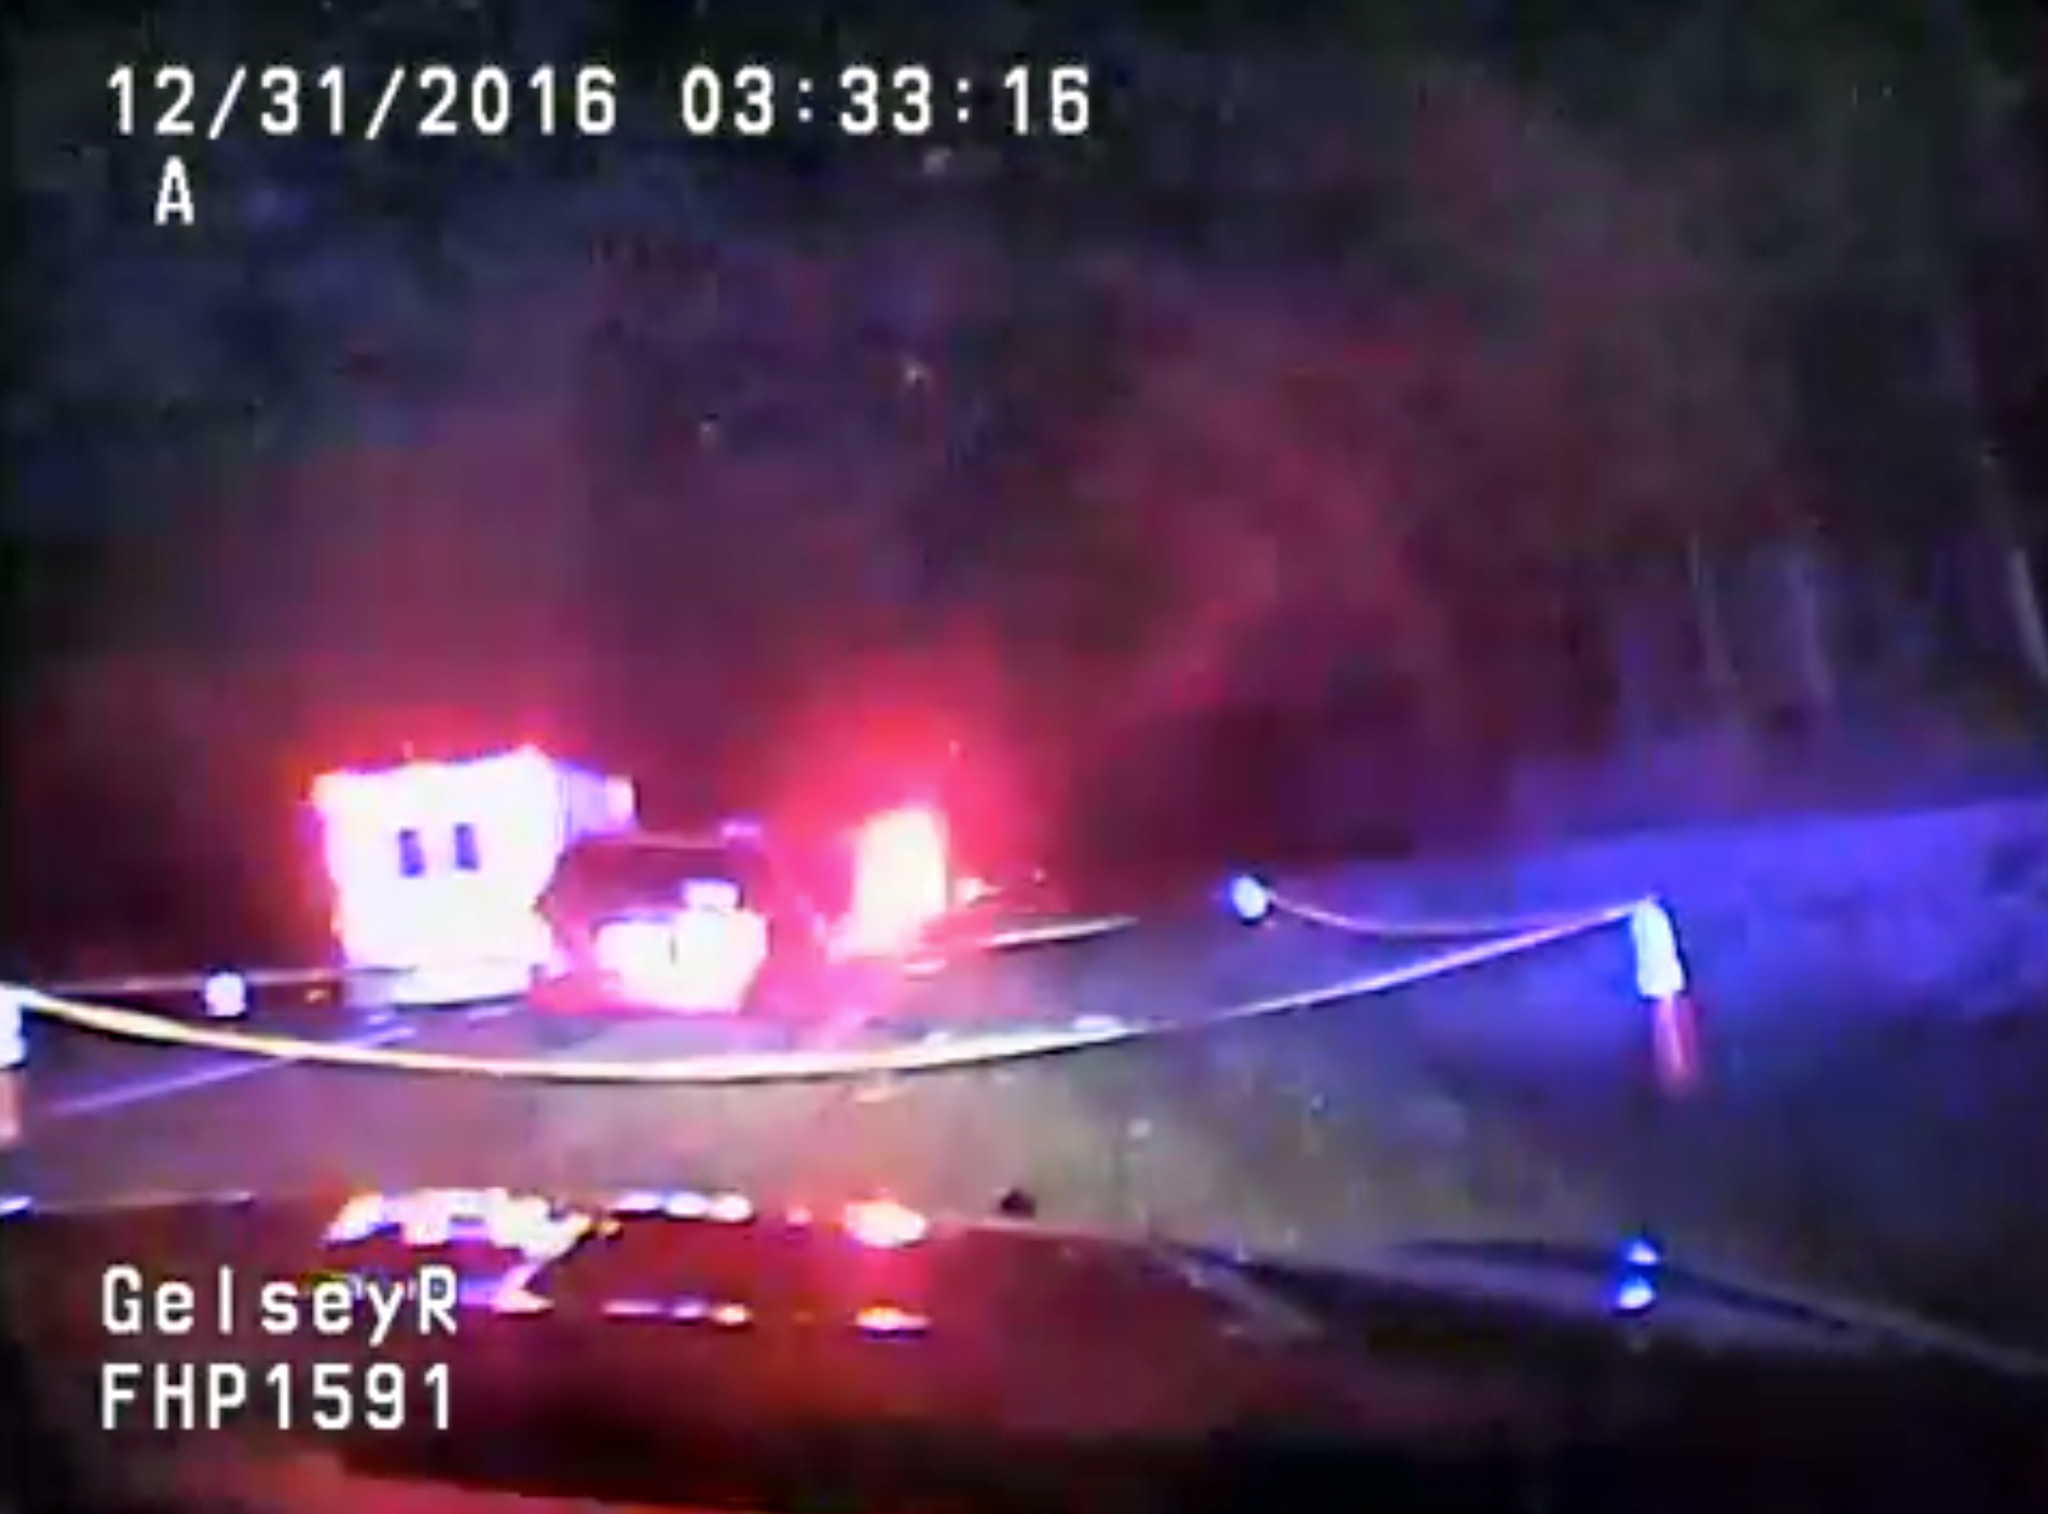 Dash cam footage from Florida Highway Patrol Trooper Richard Gelsey's vehicle shows the Kelsey's car pulled off to the side of I-4. (Florida Highway Patrol)